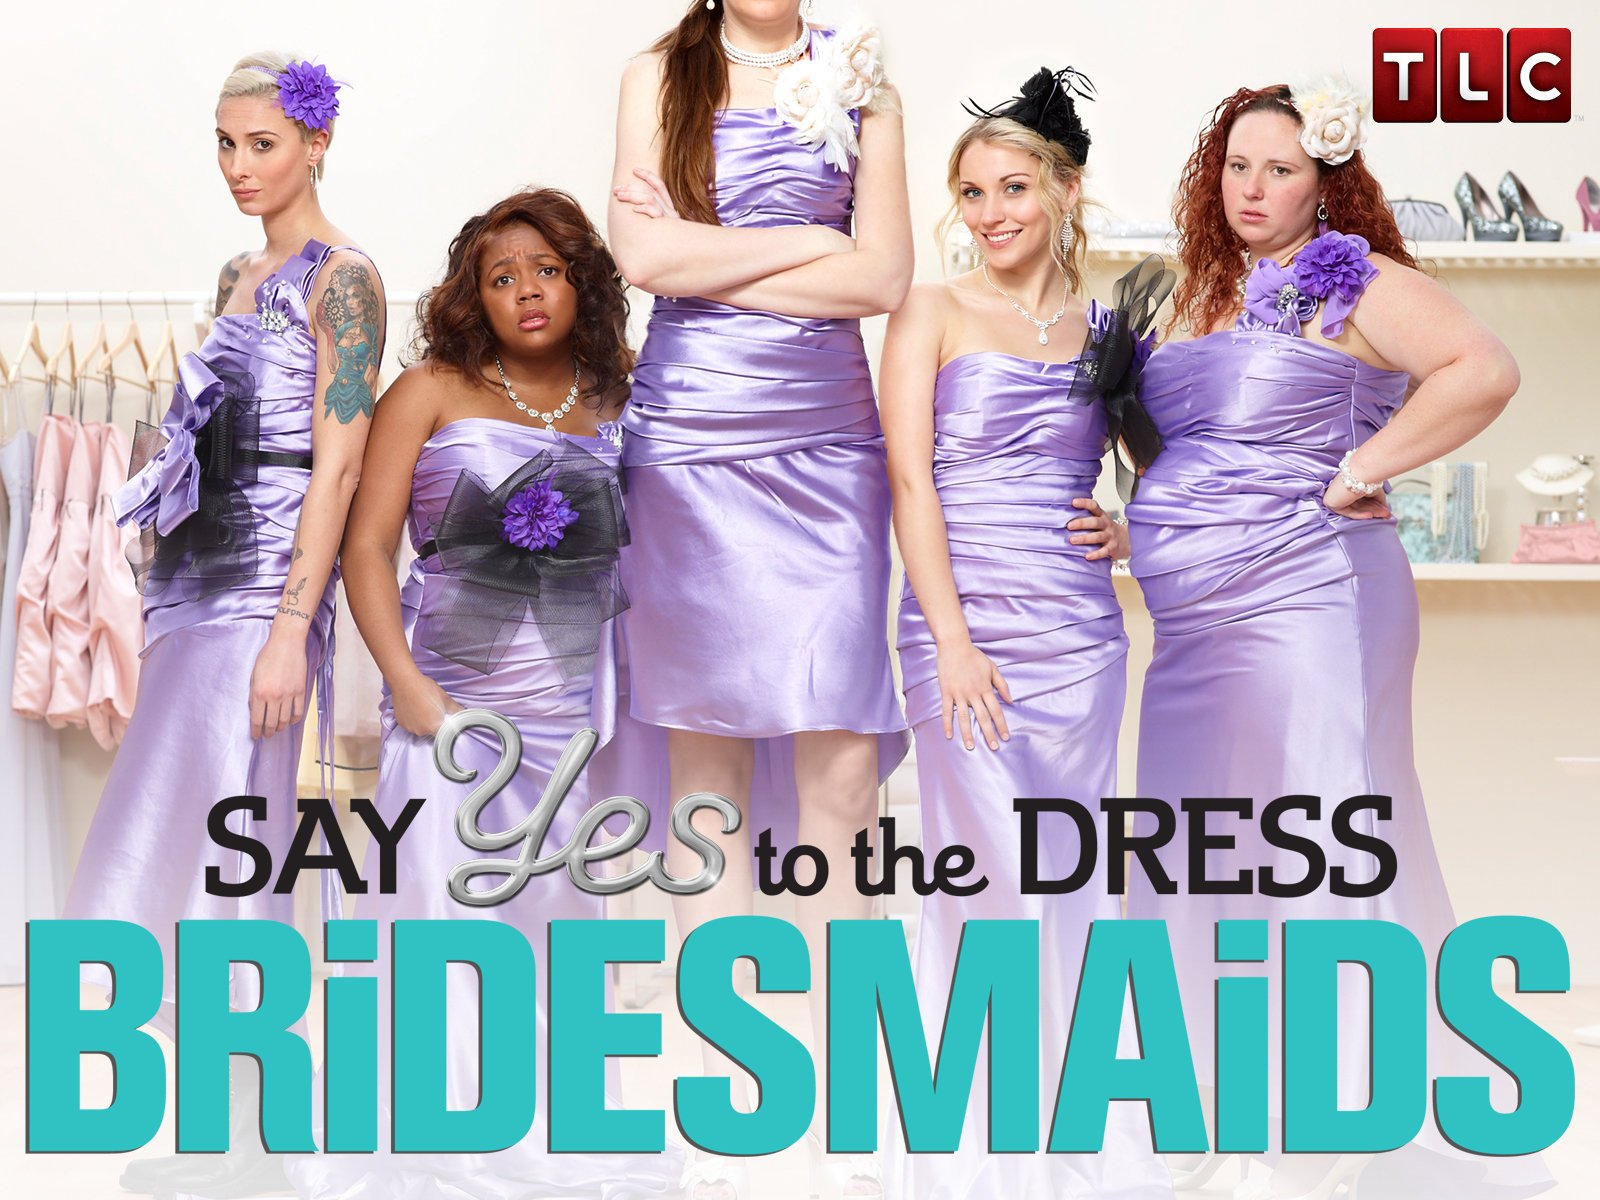 Amazon say yes to the dress bridesmaids season 2 amazon amazon say yes to the dress bridesmaids season 2 amazon digital services llc ombrellifo Gallery